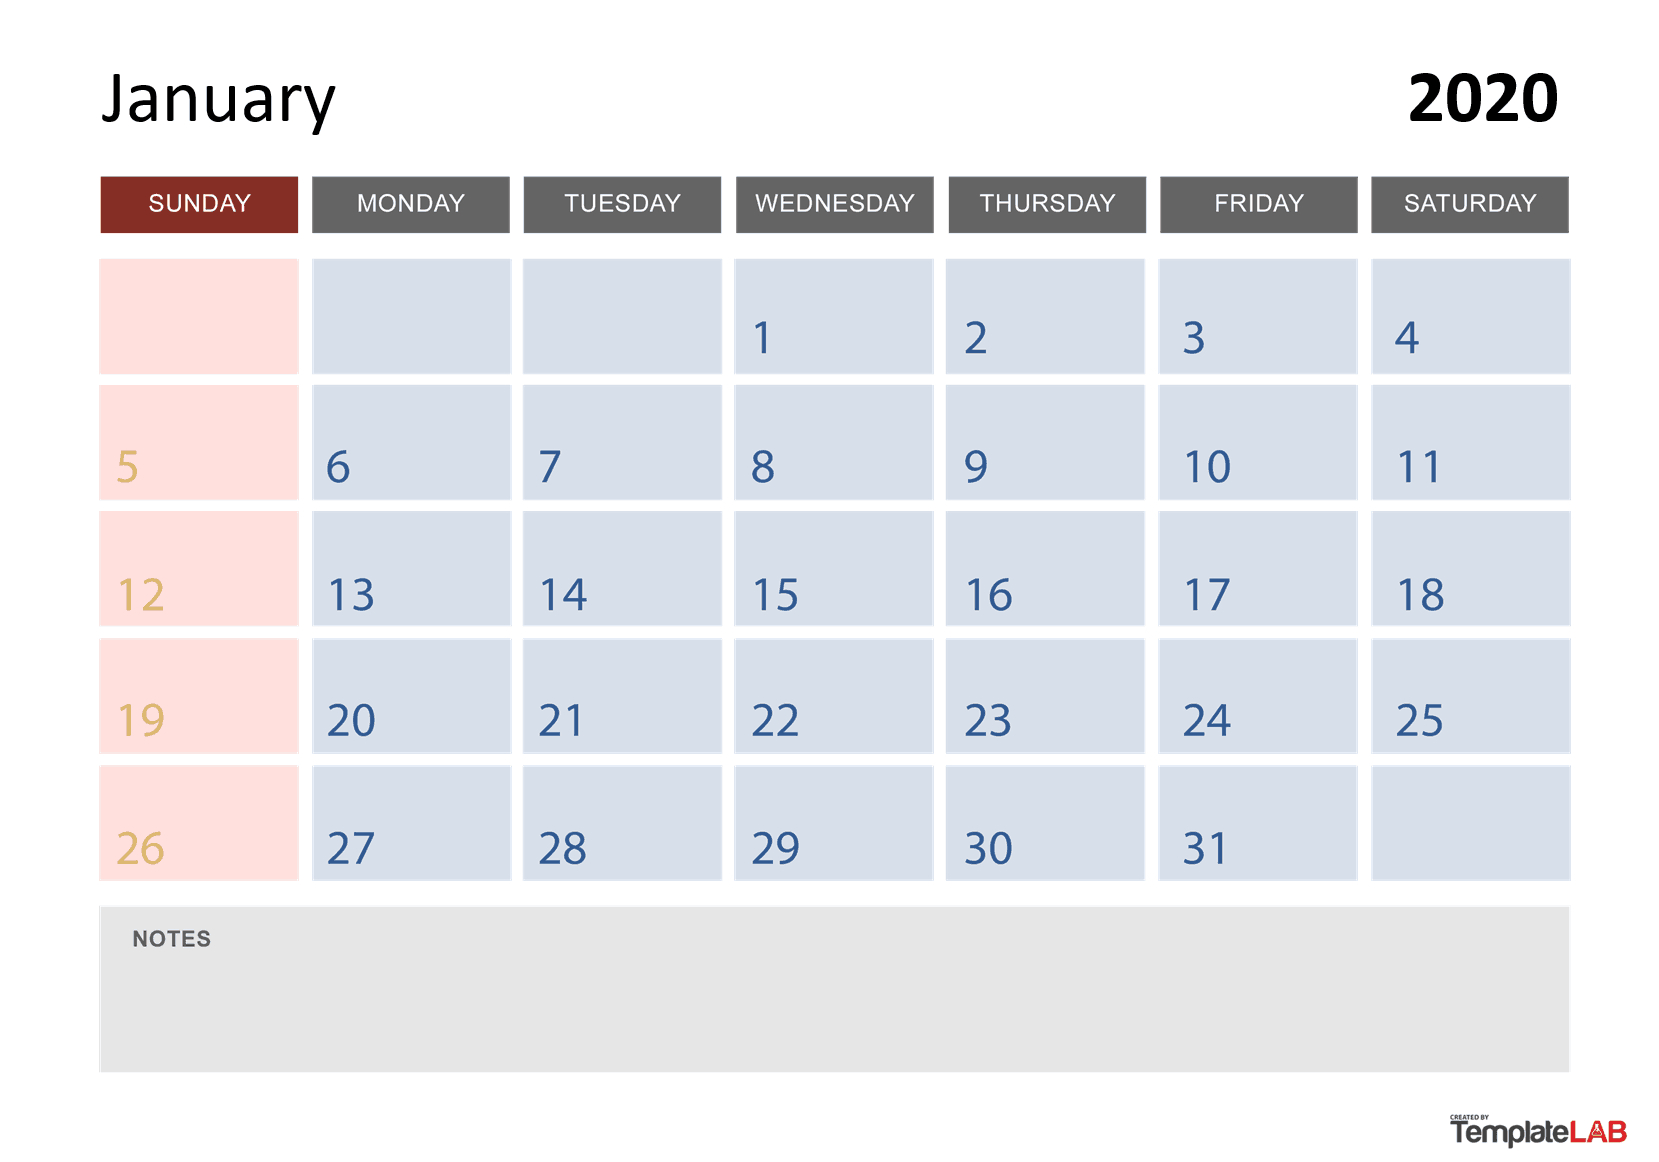 [%2020 Printable Calendars [Monthly, With Holidays, Yearly] ᐅ|2020 Calendar Legal Holidays|2020 Calendar Legal Holidays%]